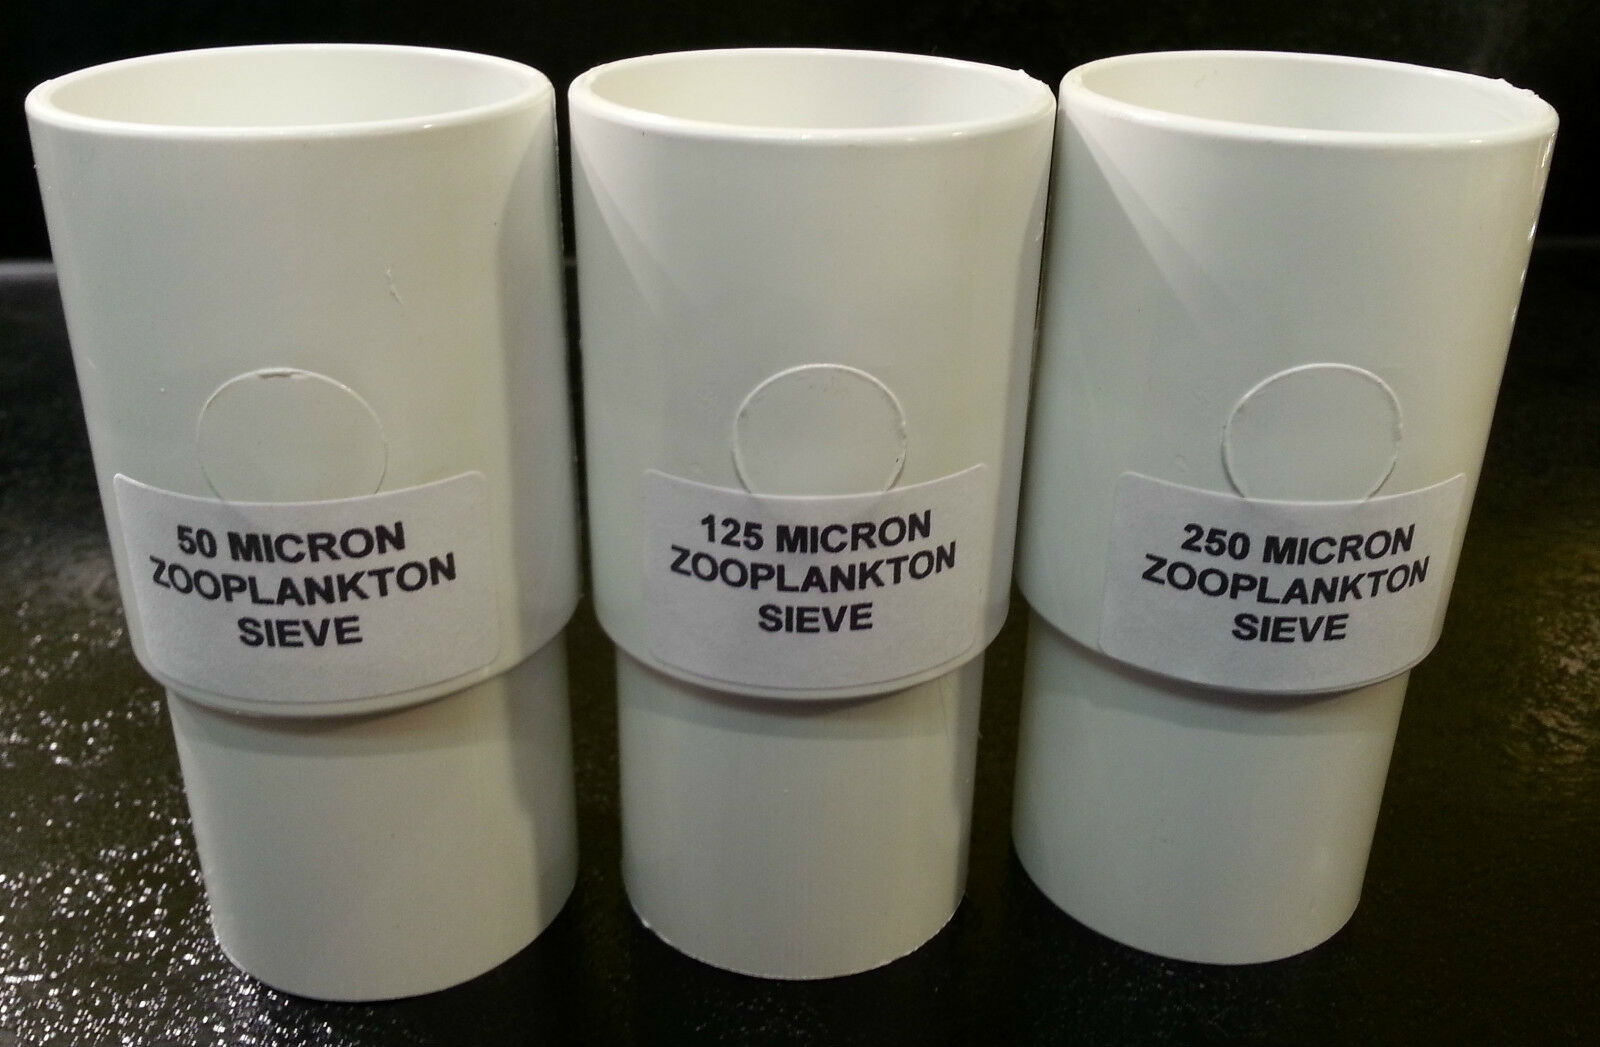 Zooplankton Stackable Sieves 10 25 50 75 125 250, Rotifers Brine Shrimp Copepods